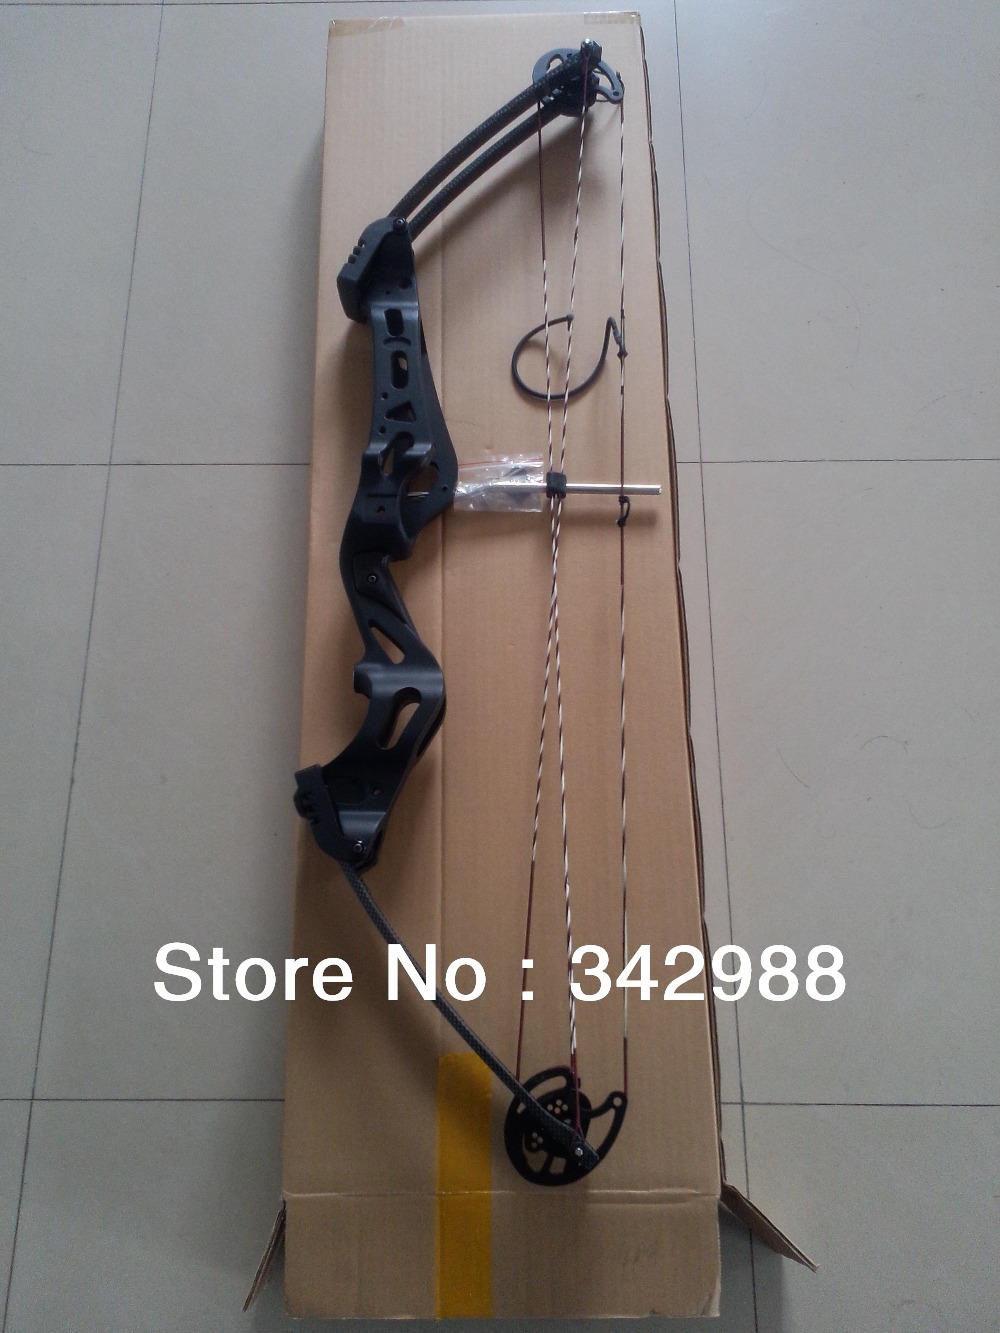 Hunting High strengthmagnesium alloy nighthawk compound bow Compound longbow rapid shoot bow